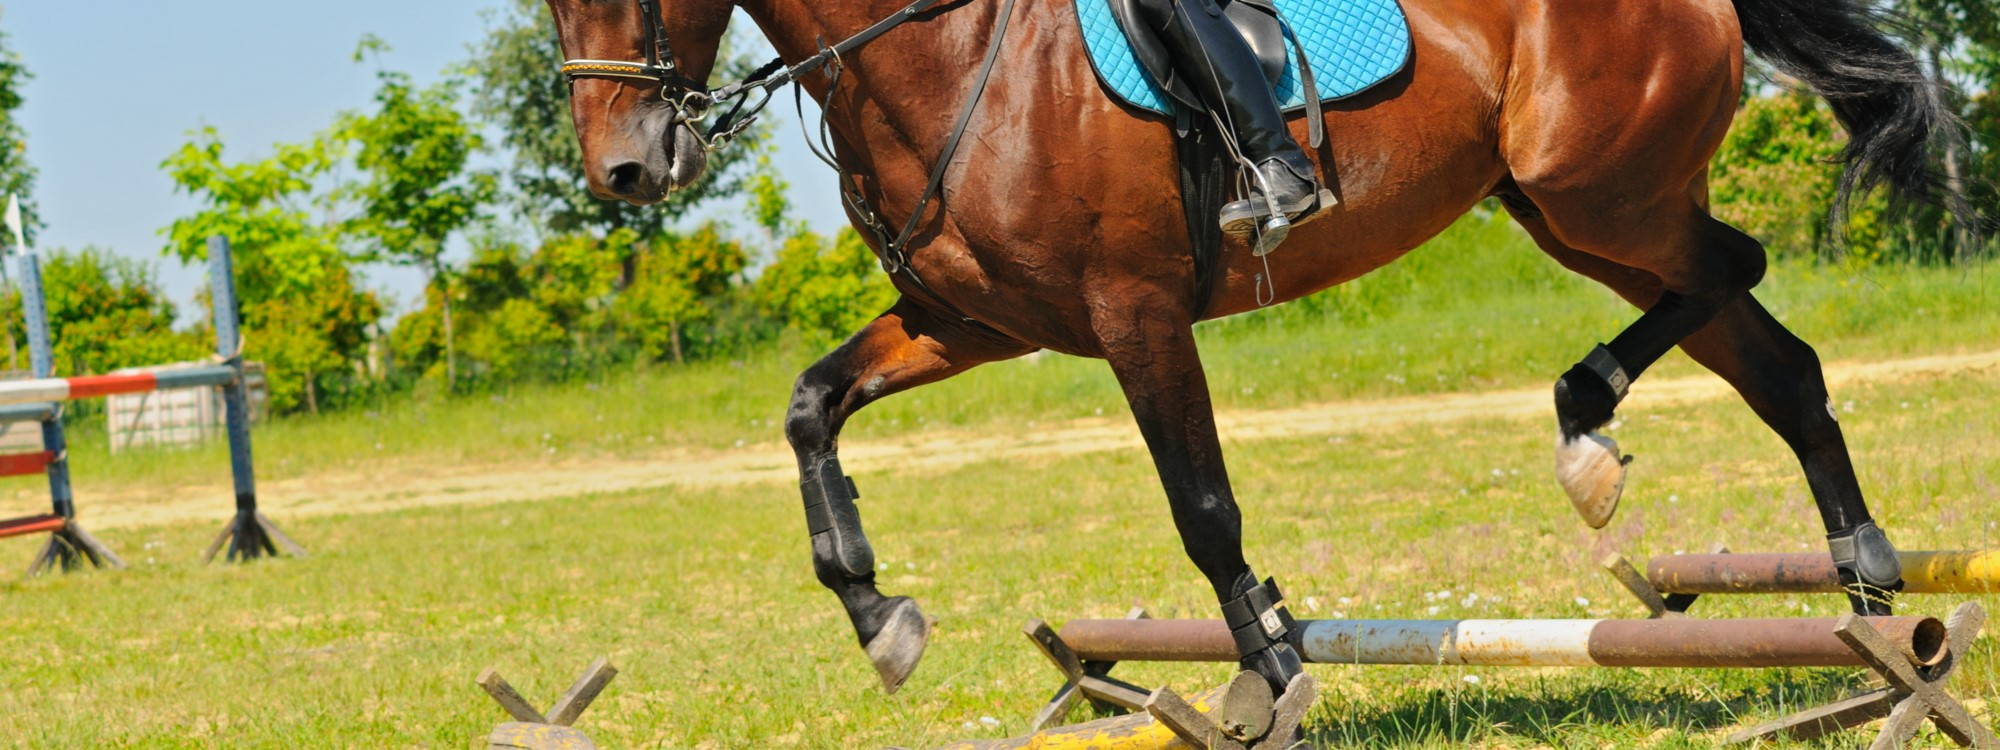 bay horse trotting over poles